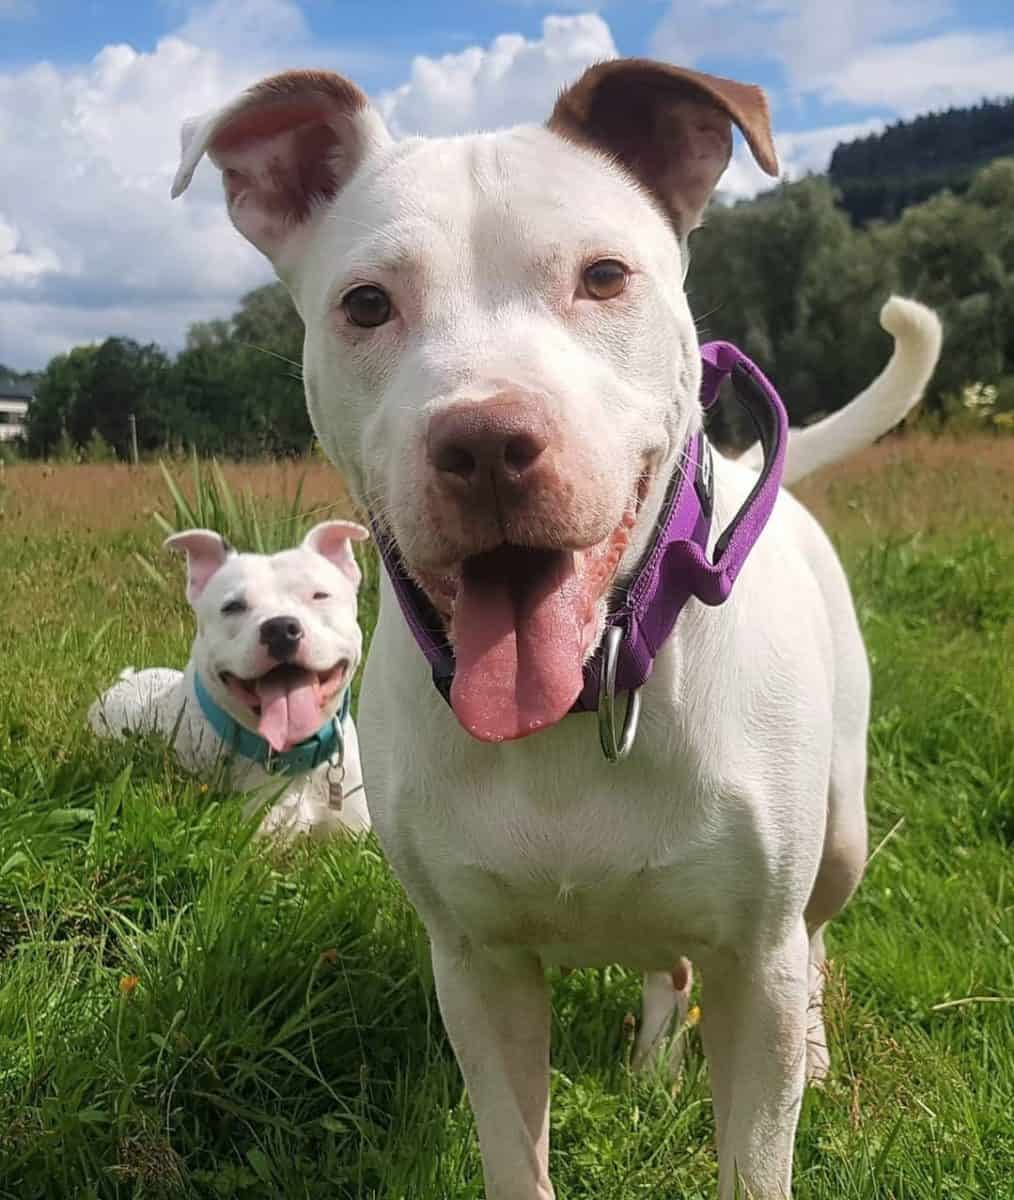 Two white Pitbulls playing together